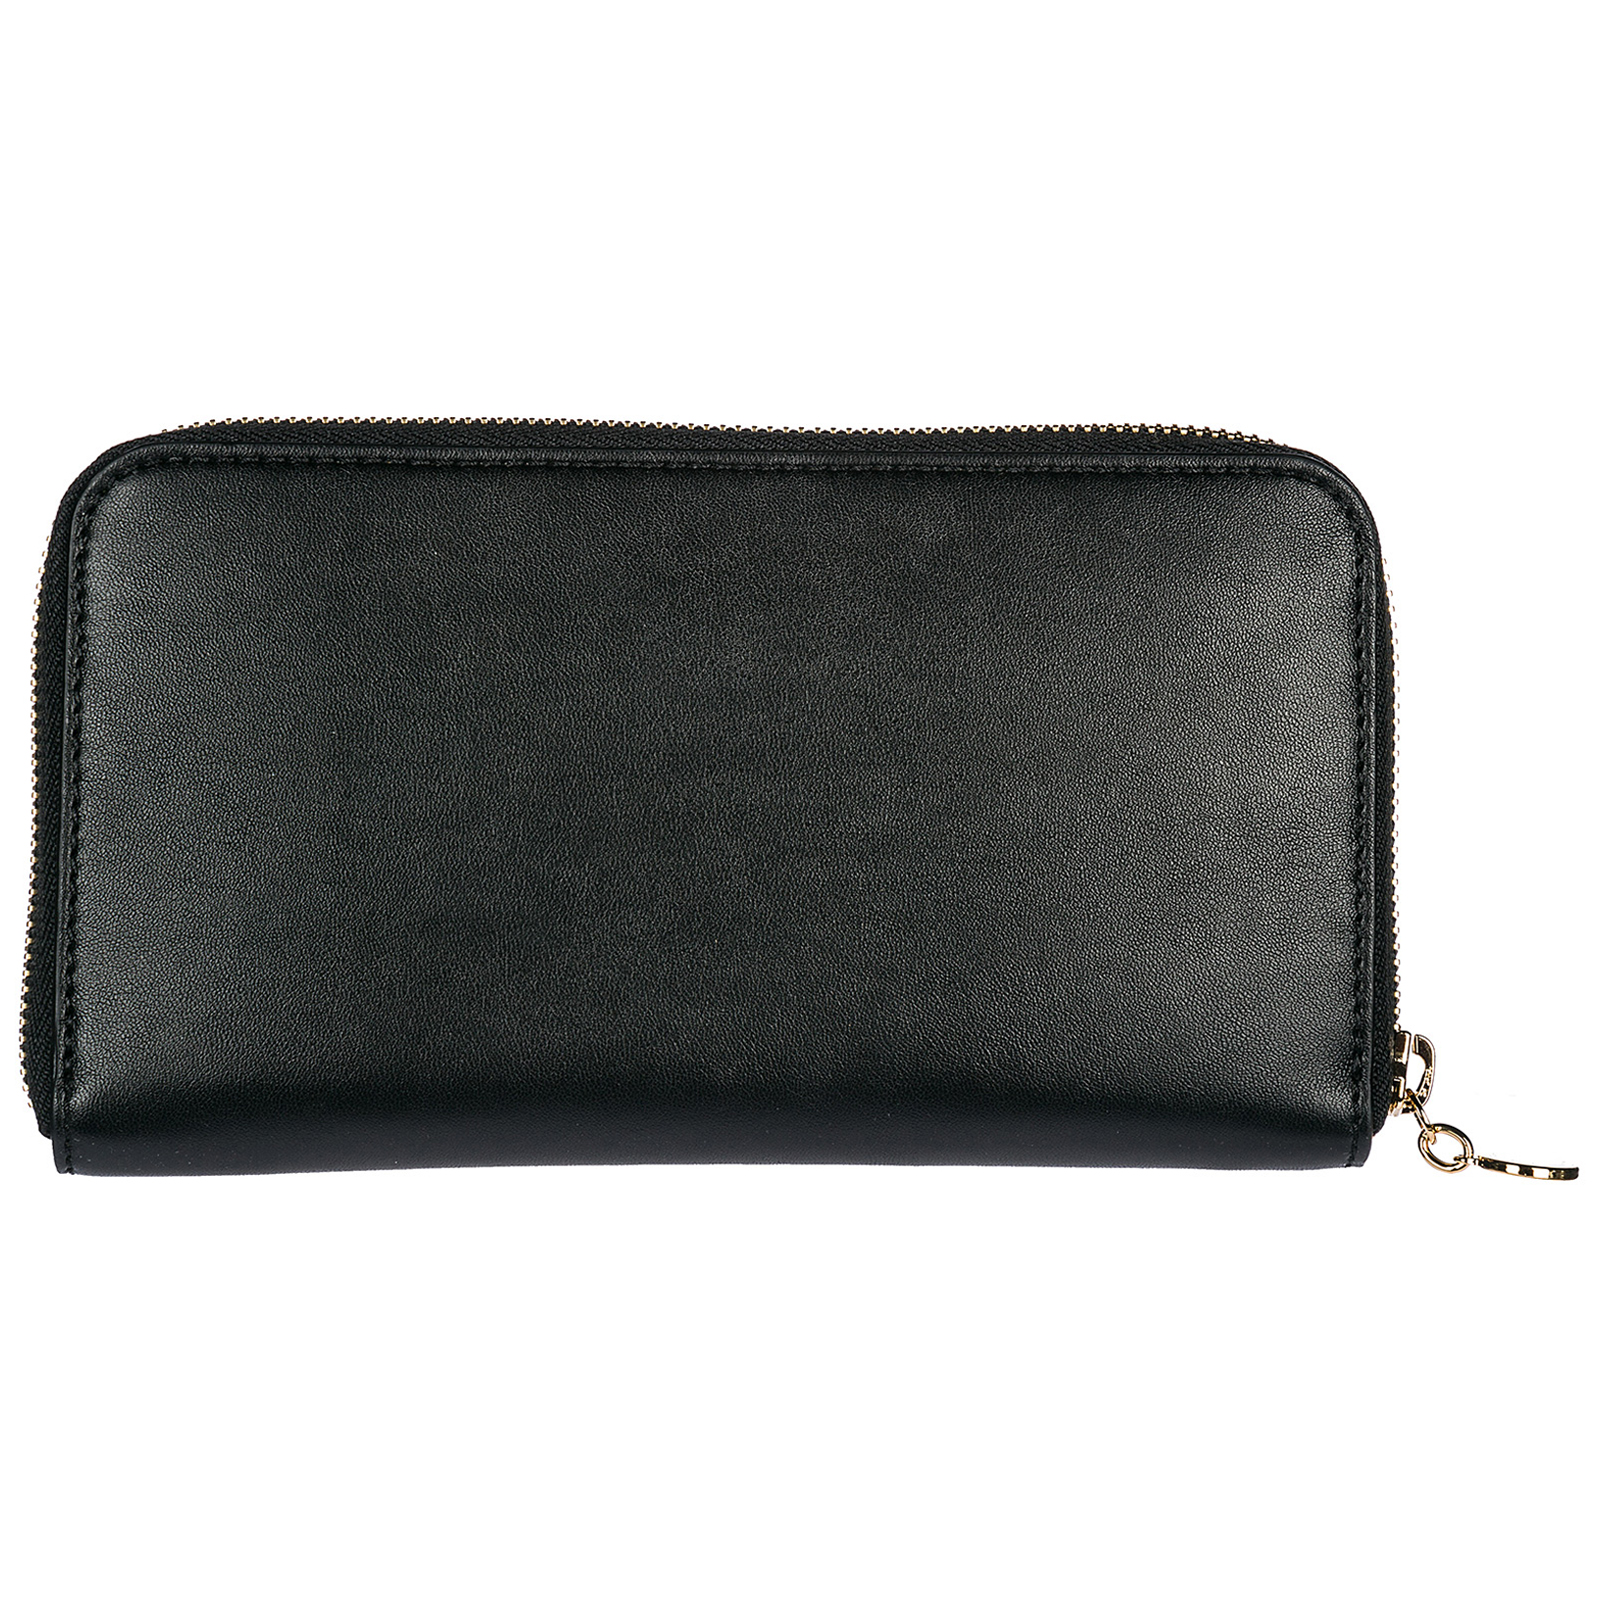 Women's wallet coin case holder purse card bifold